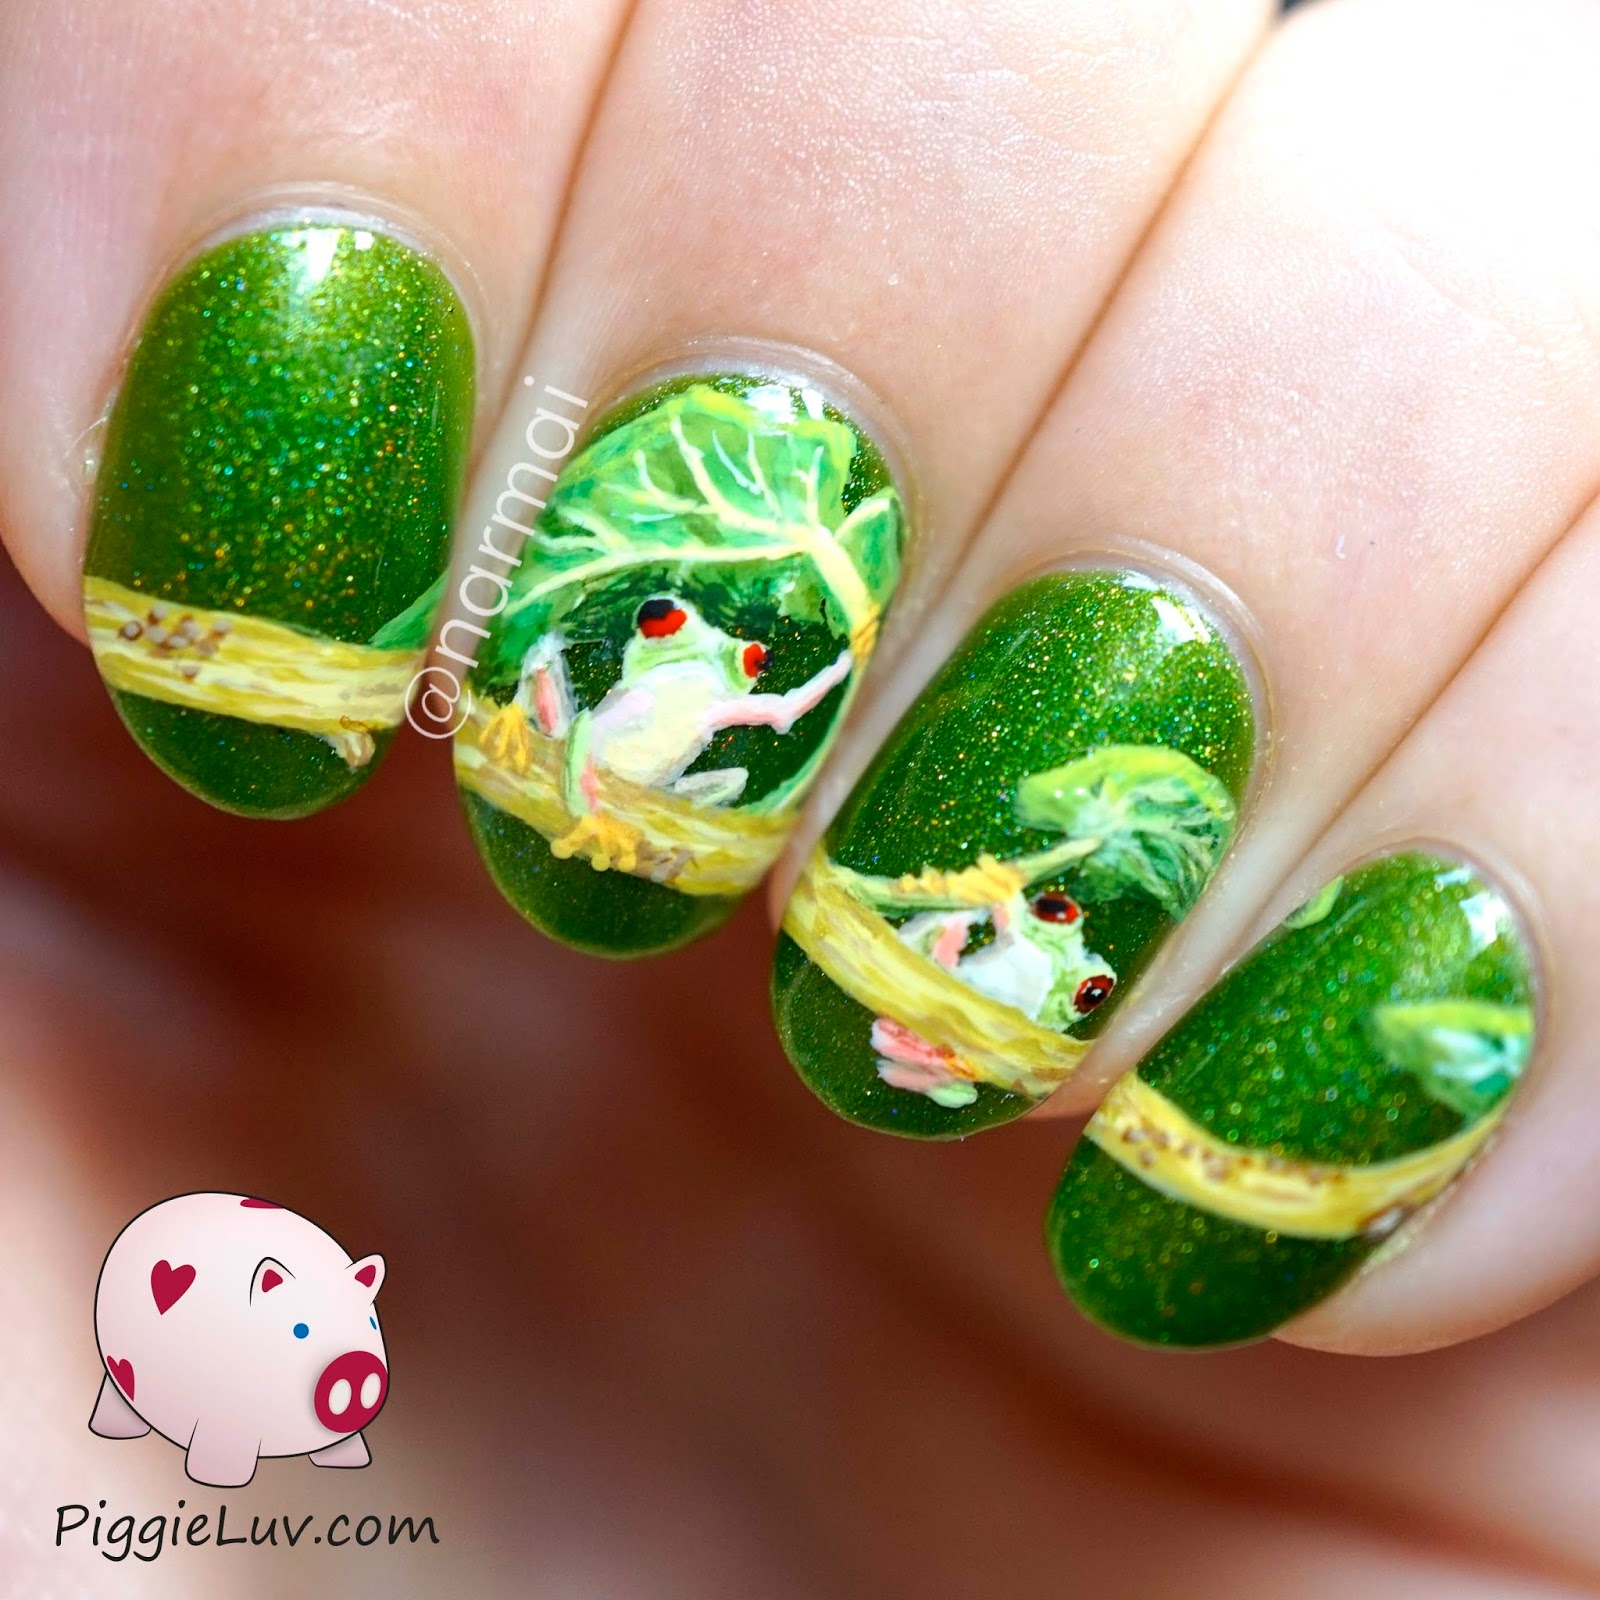 Piggieluv freehand red eyed tree frog nail art why are frogs so happy because they eat what bugs them this gorgeous background polish is gothic gala lacquers lili st cyr it has a special kind of prinsesfo Choice Image